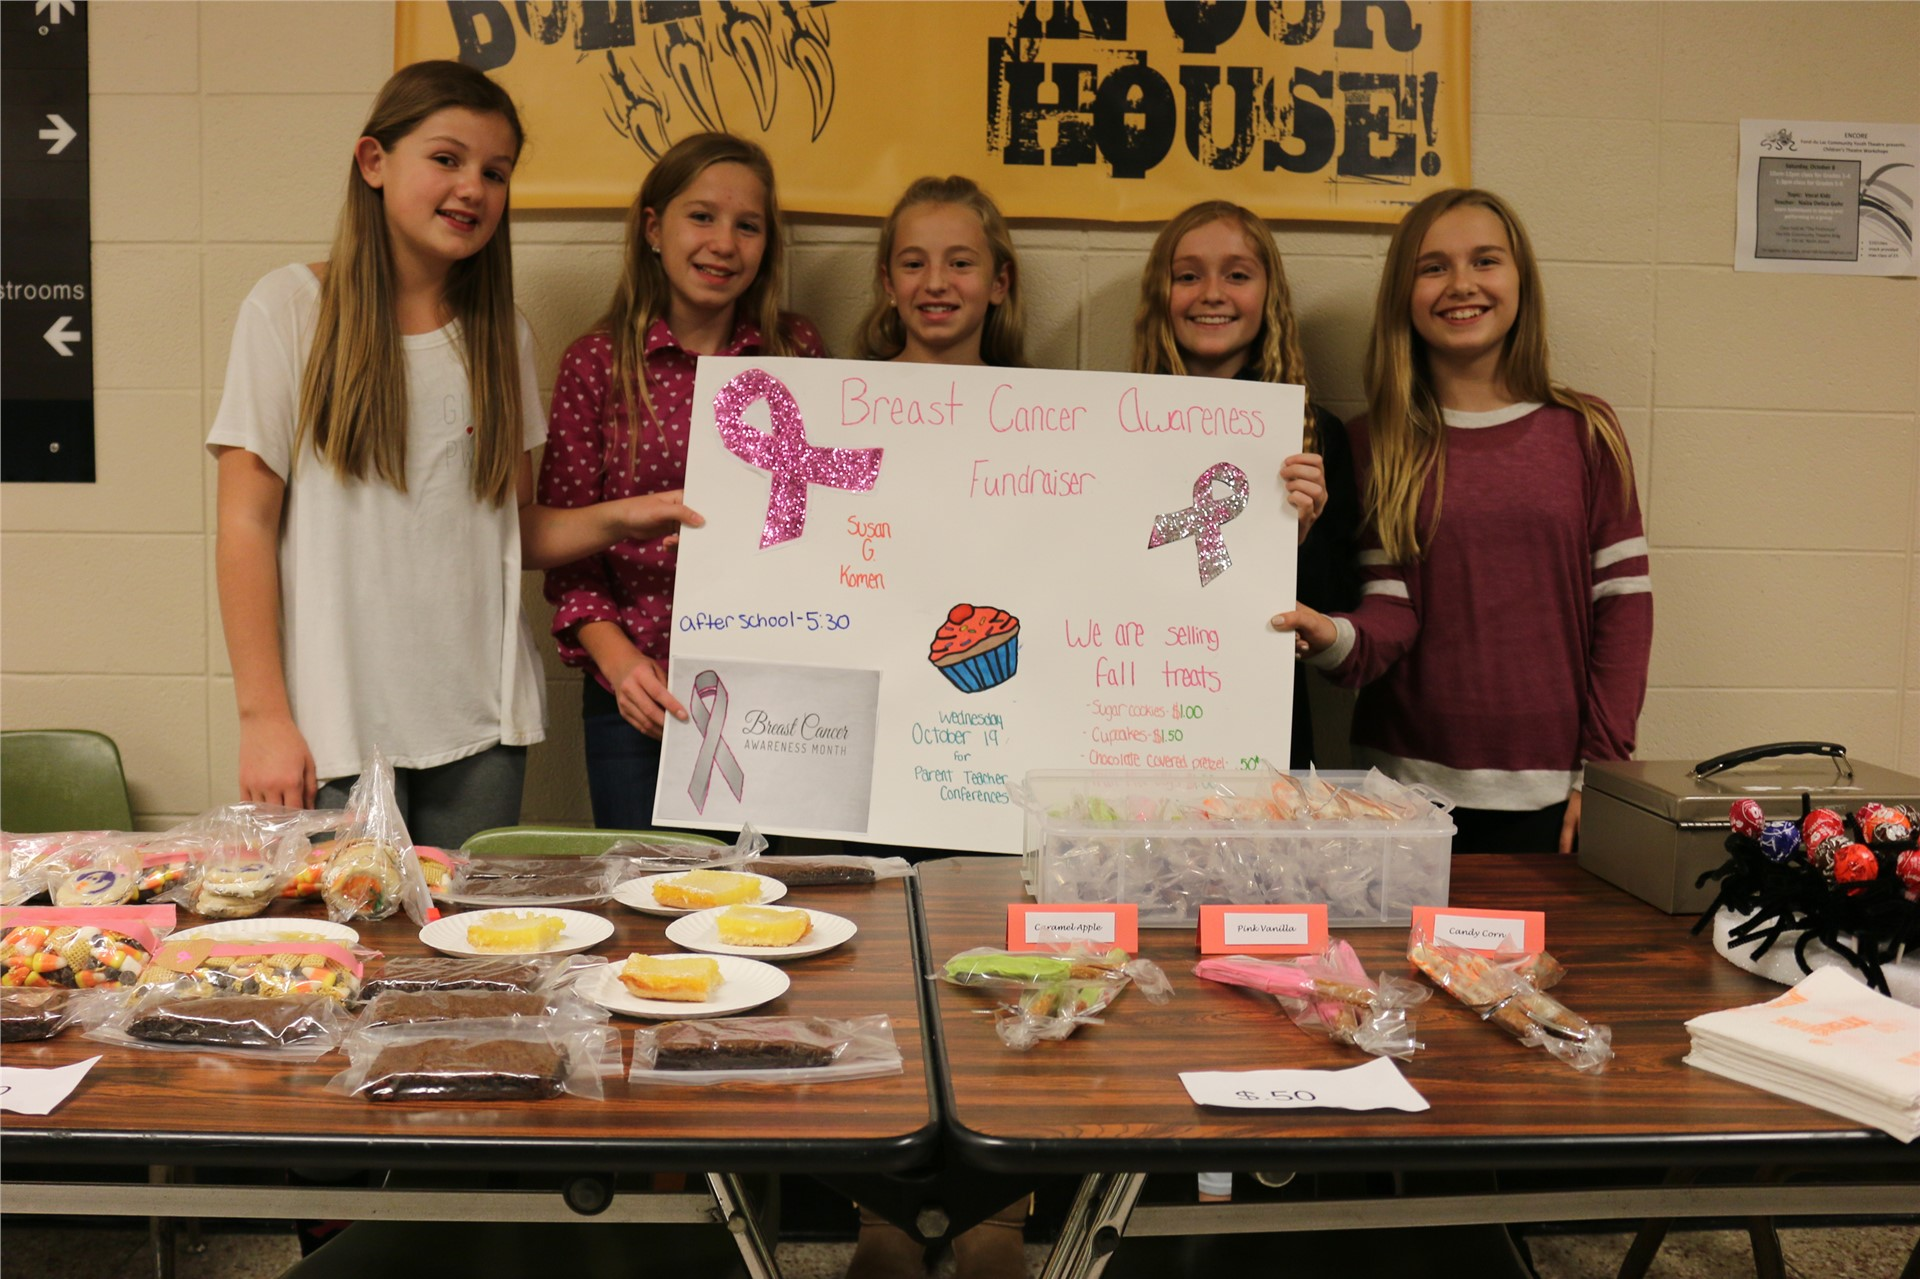 Kaley Sternweis, Mya Van Buren, Grace Guderski, Kendal Maury, and Katey Berger raised 306 dollars for Breast Cancer Research by selling a variety of bake goods. They donated  the money to the Susan G. Komen Foundation.